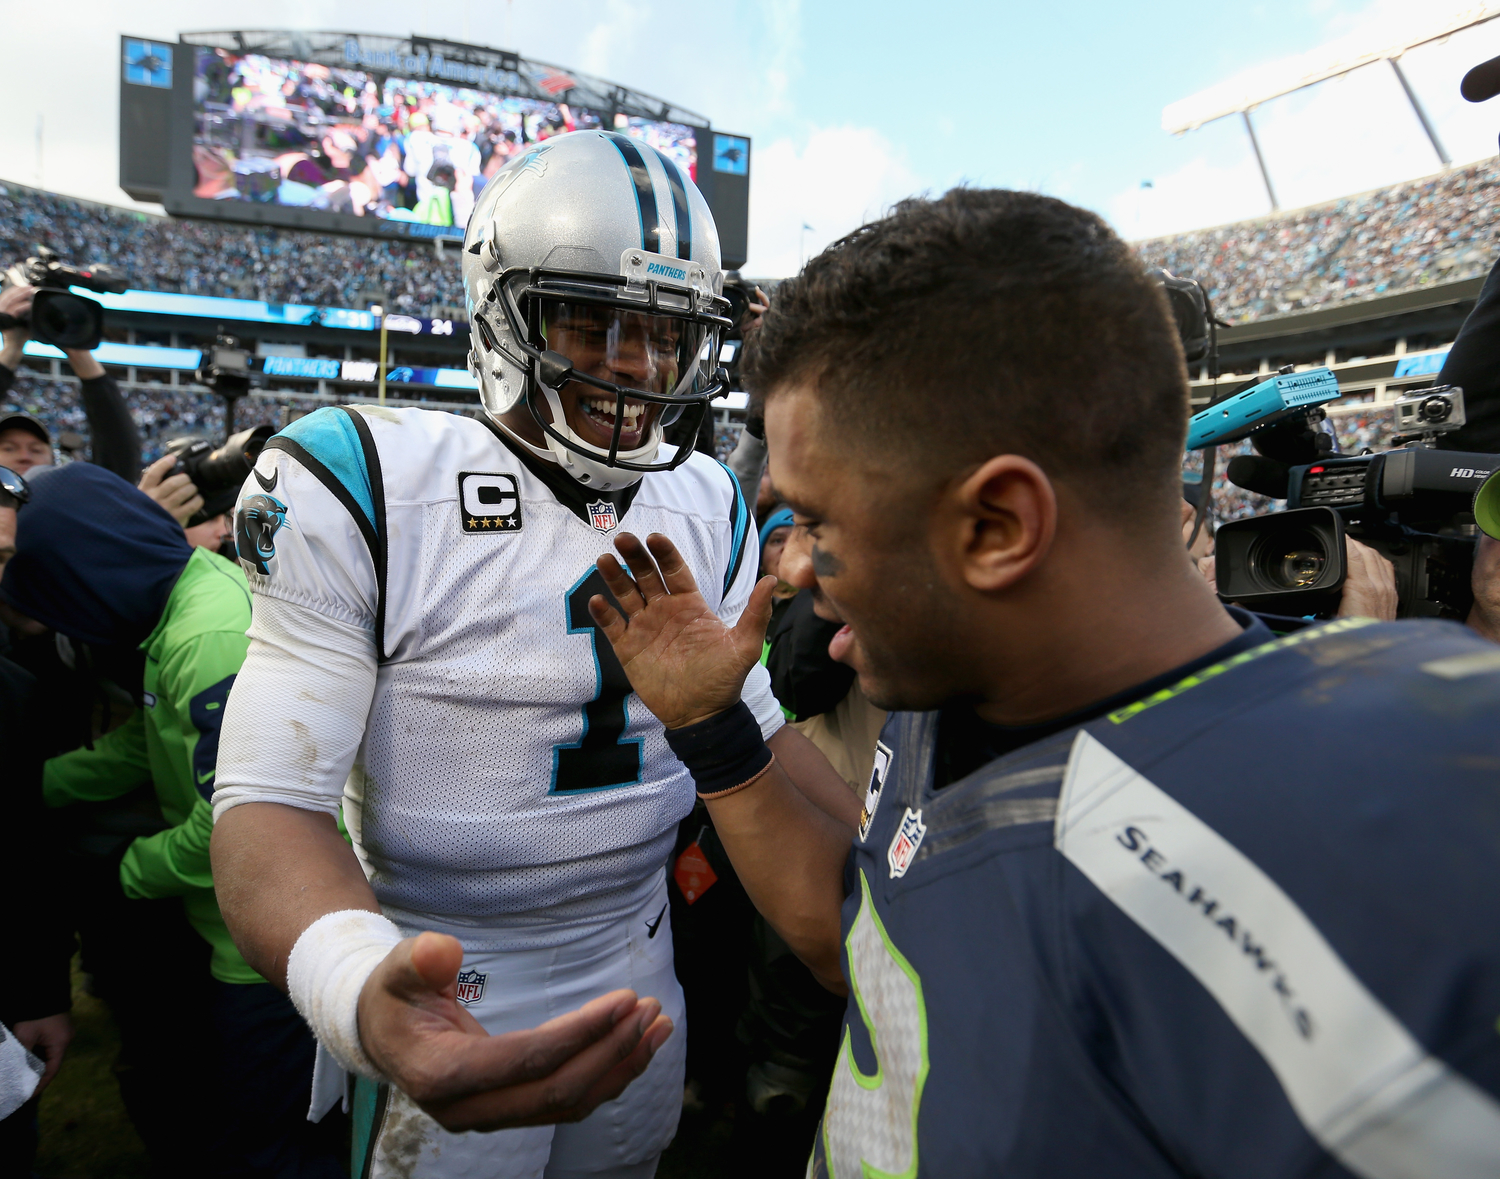 Cam Newton already accomplished the only achievement missing from Russell Wilson's resume, but the Seahawks QB still beats the Patriots star where it matters most with his $140 million contract and Super Bowl ring.